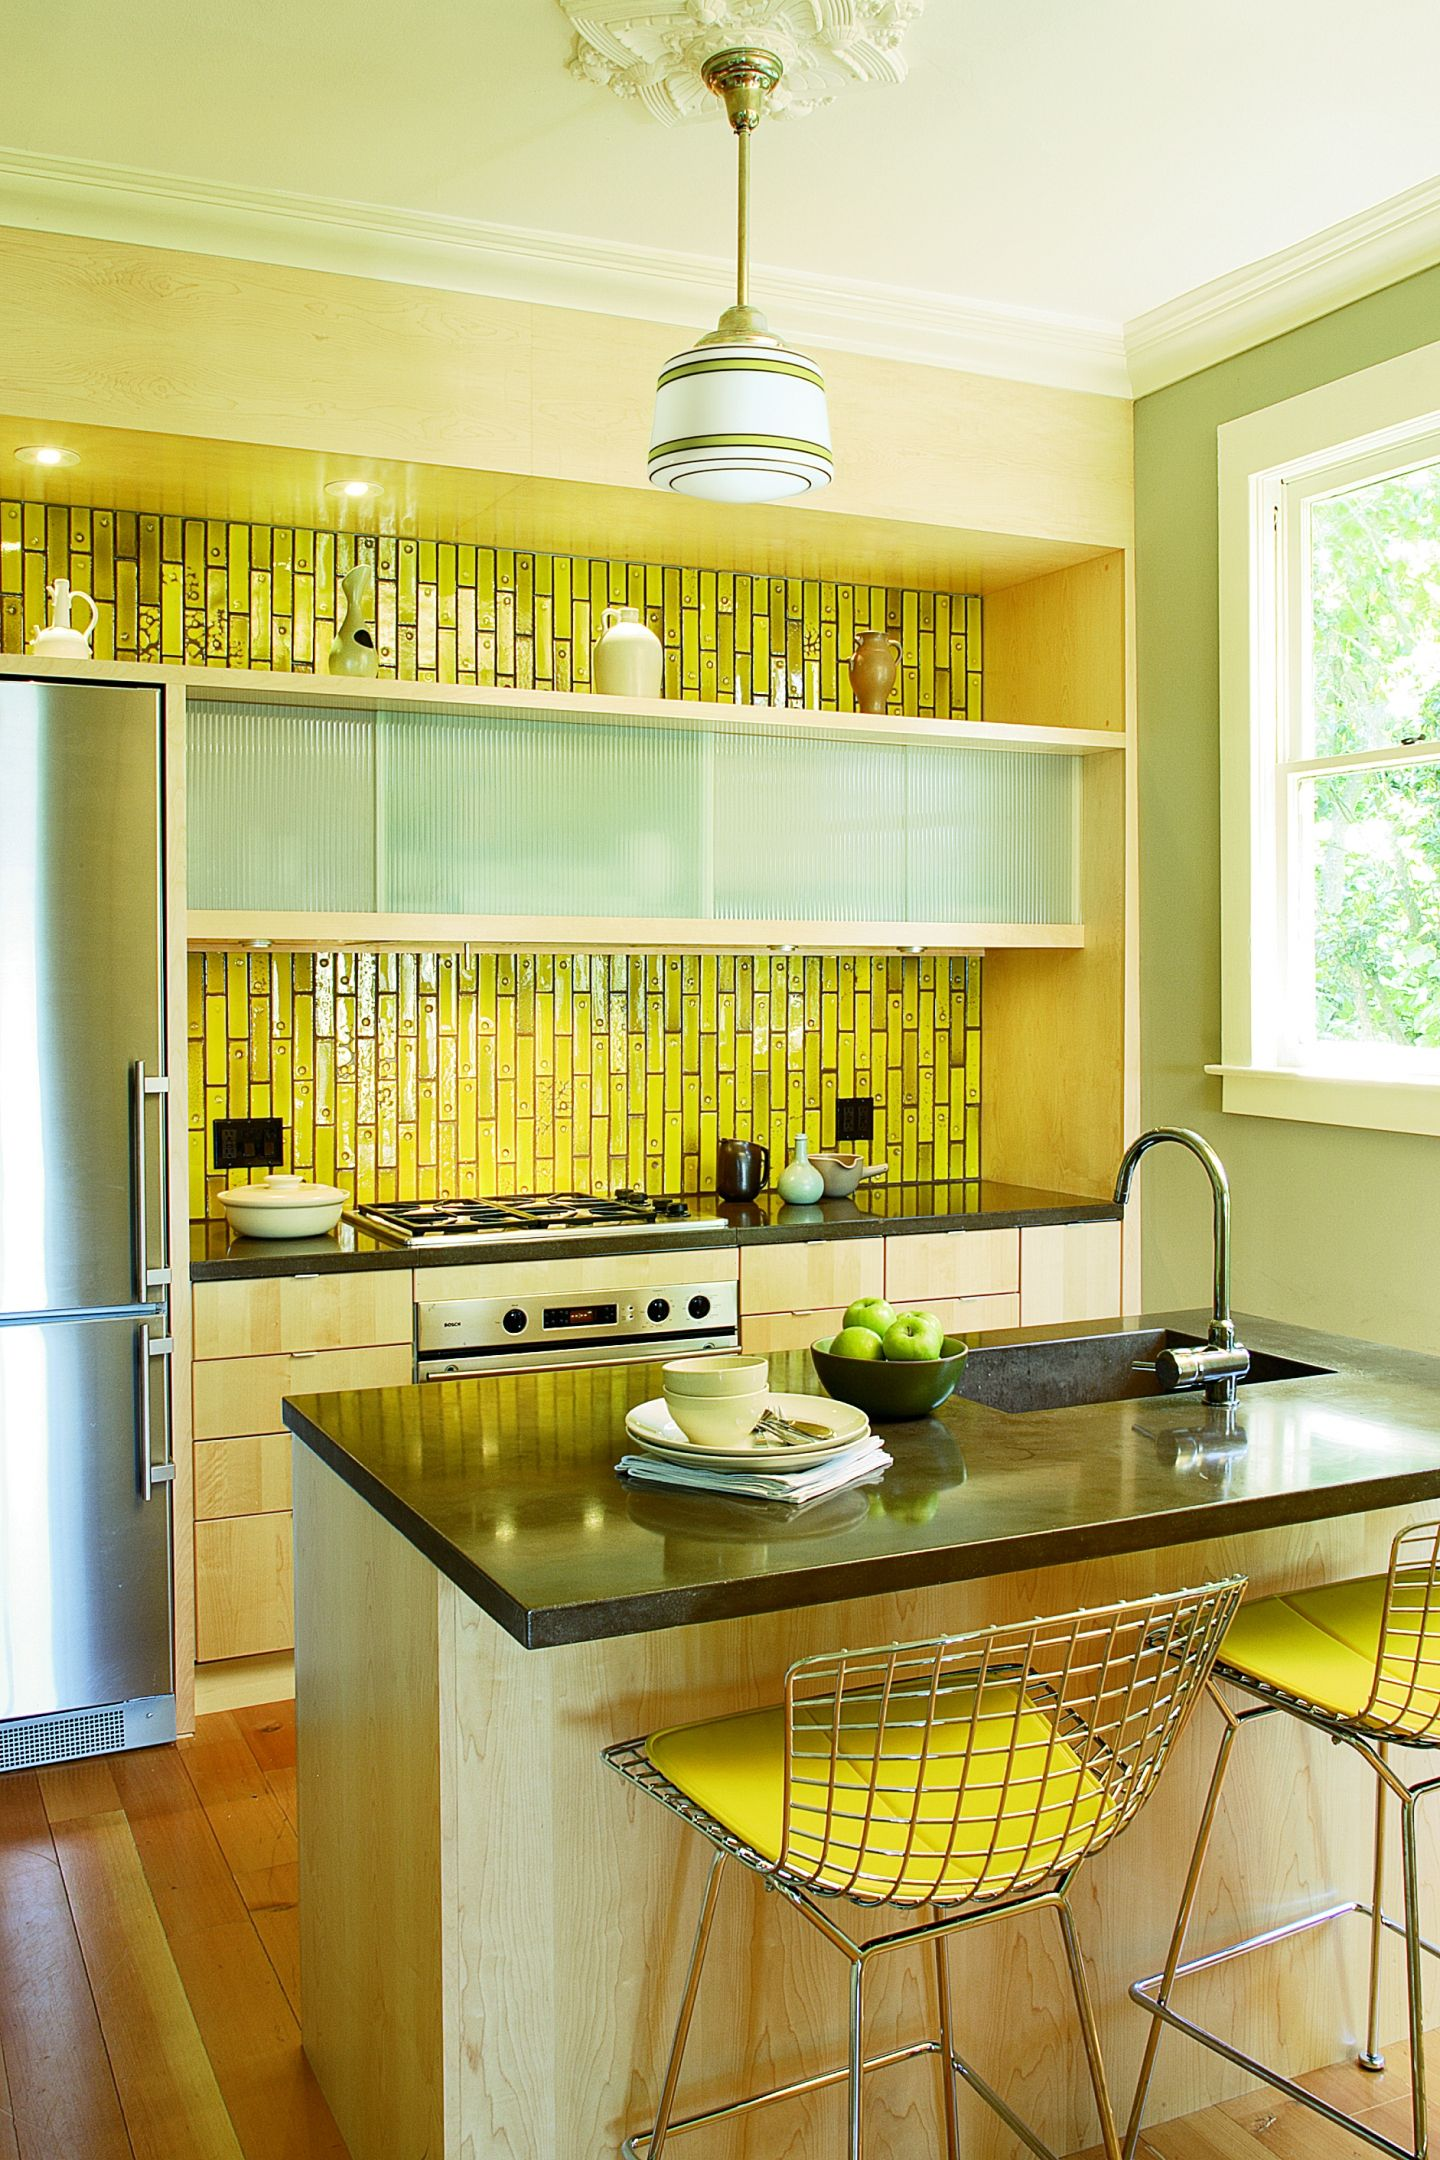 All About Pendant Lights Home Tips And Tricks Kitchen Design